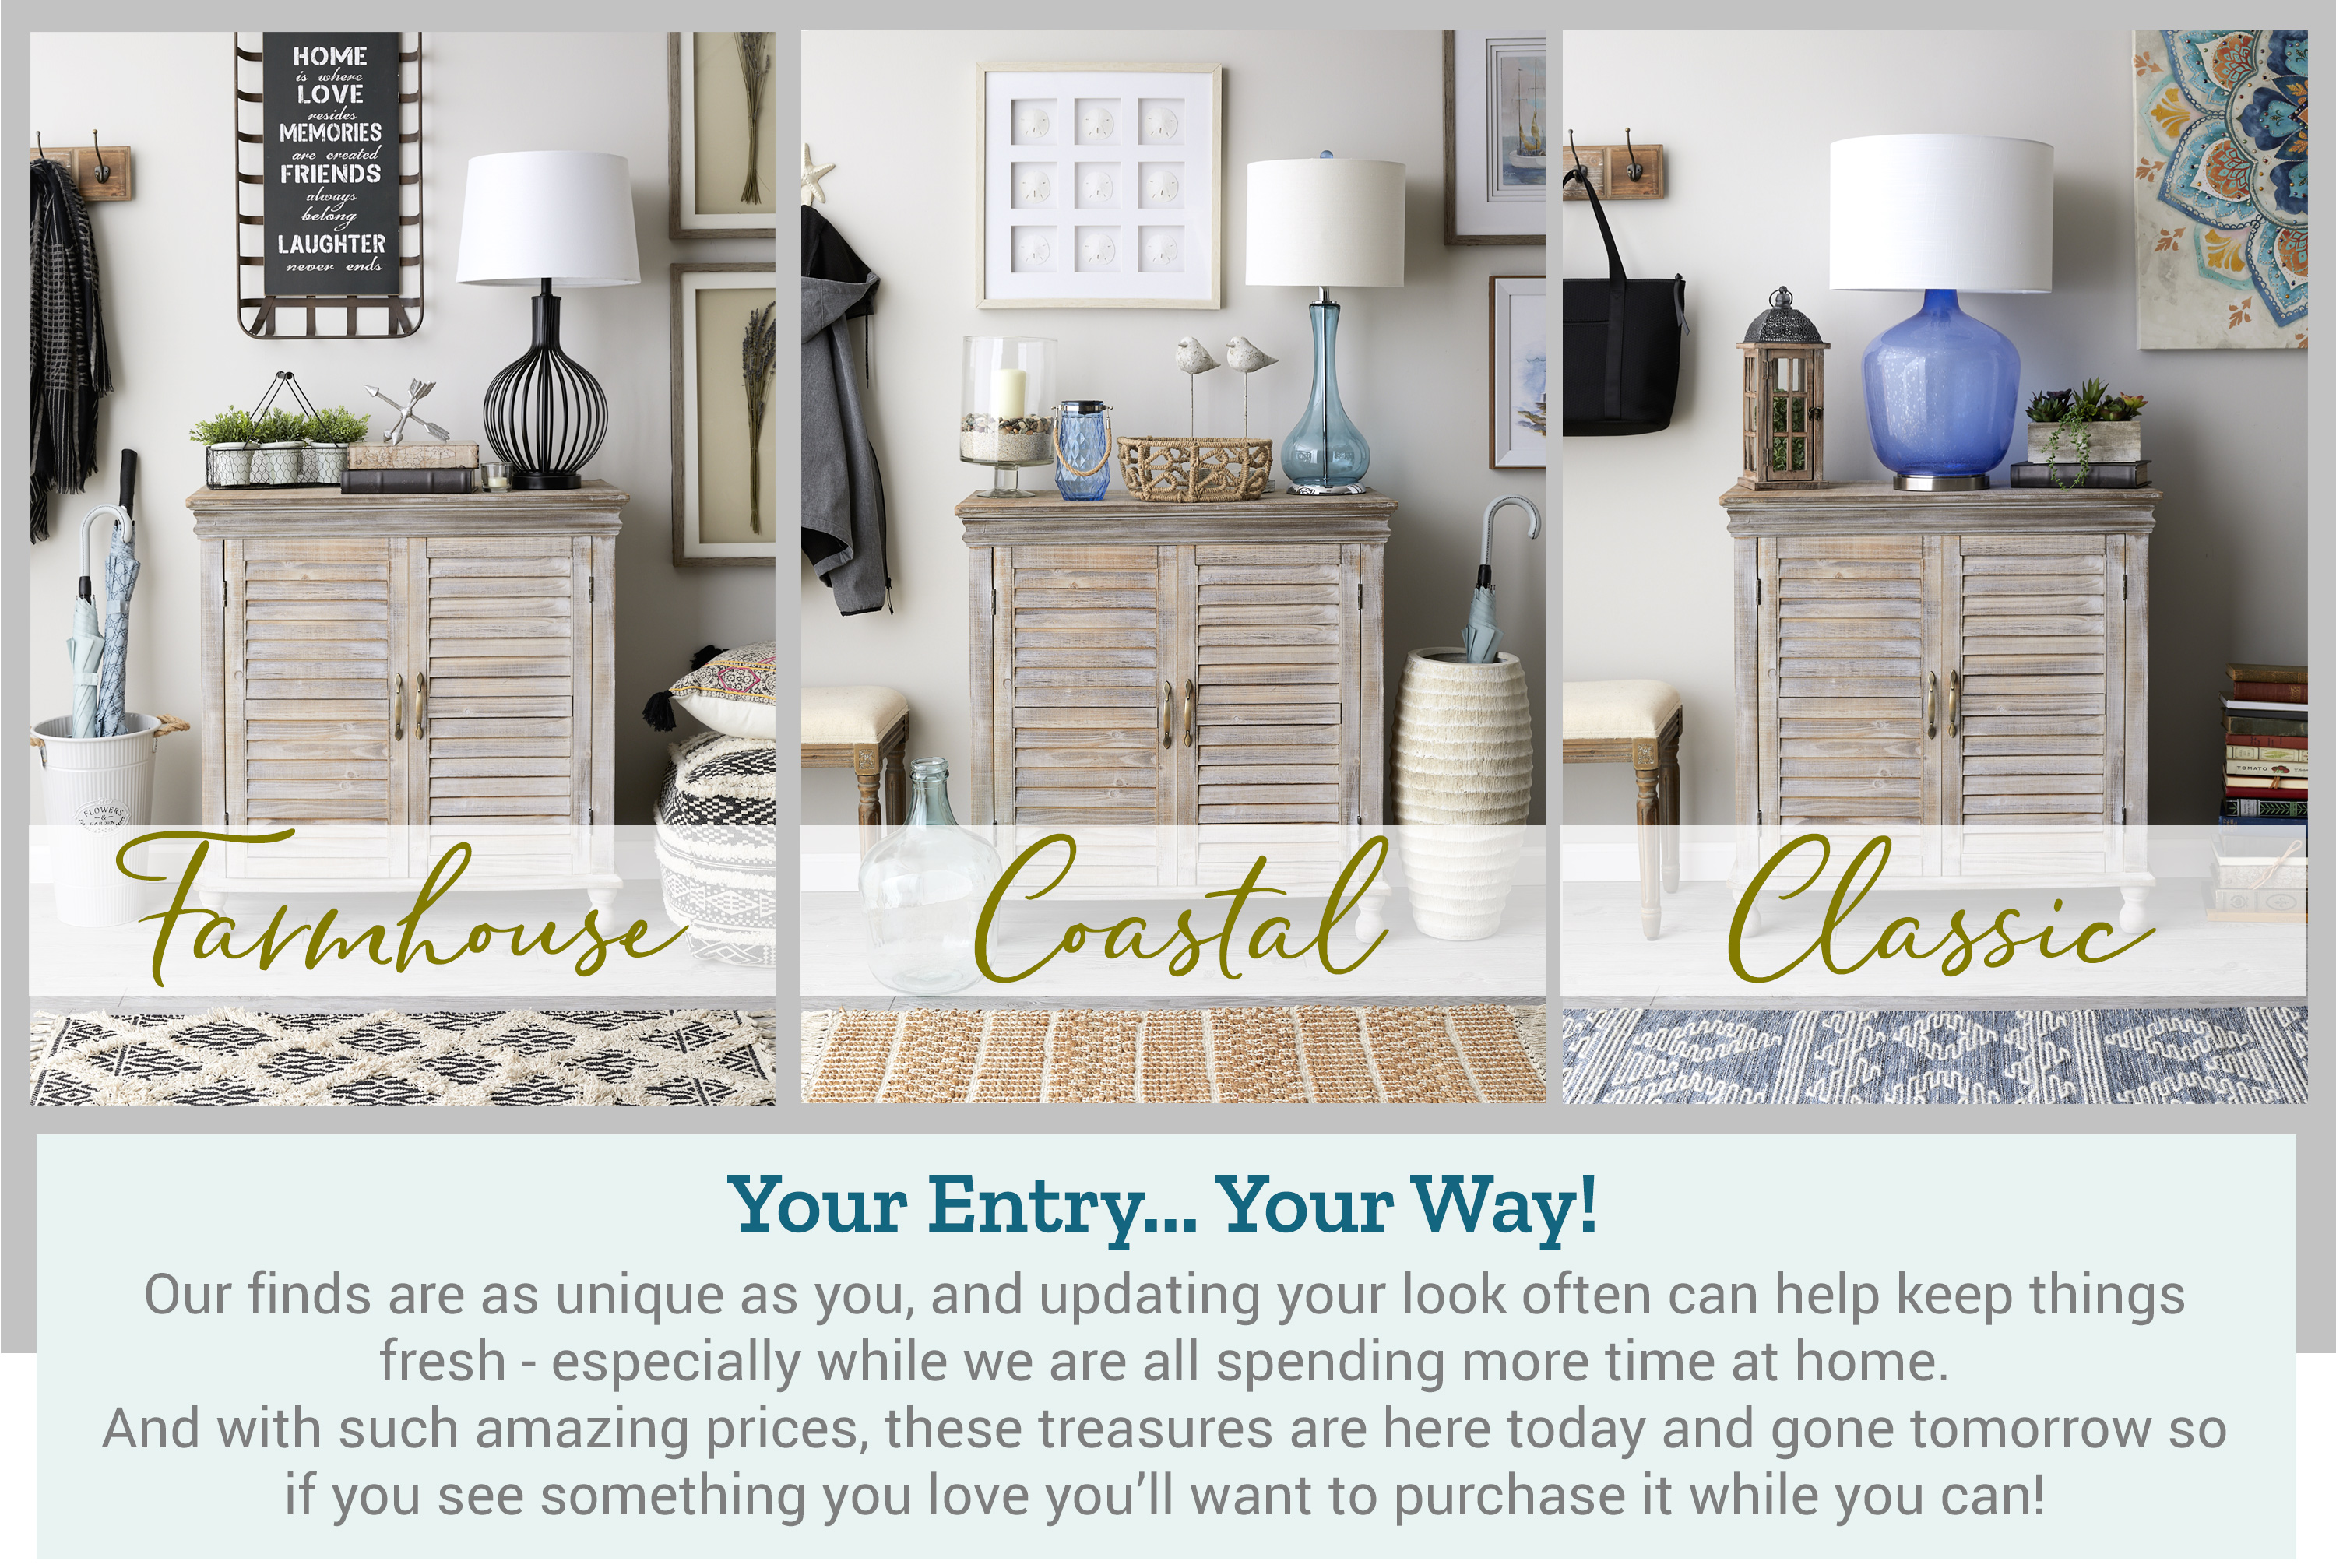 Our finds are as unique as you, and updating your look often can help keep things fresh - especially while we are all spending more time at home. And with such amazing prices, these treasures are here today and gone tomorrow so if you see something you love you'll want to purchase it while you can!